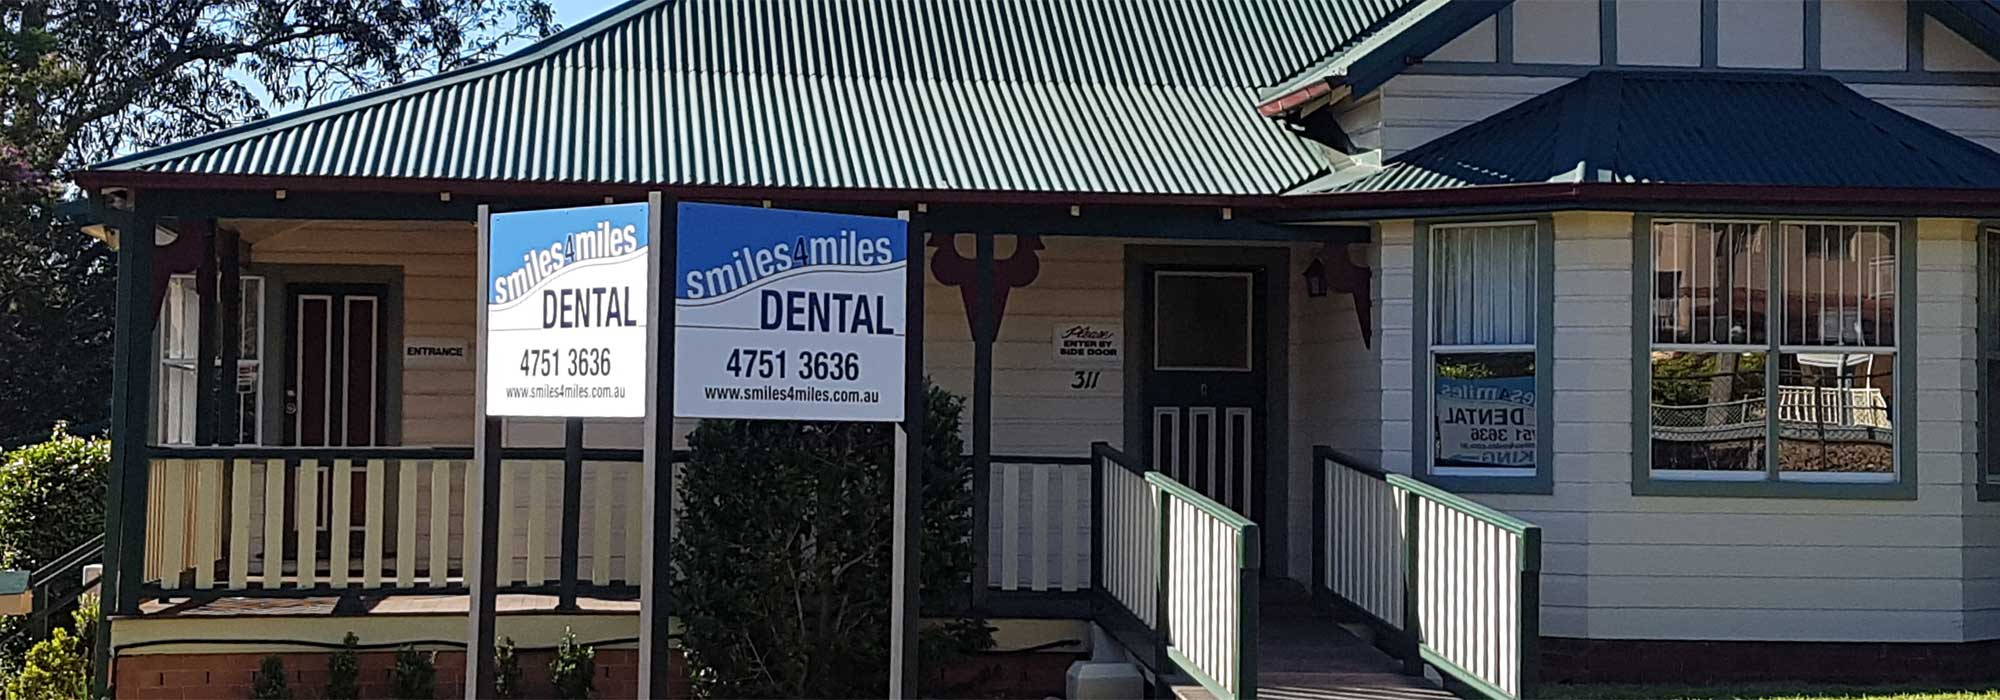 smiles 4 miles dental